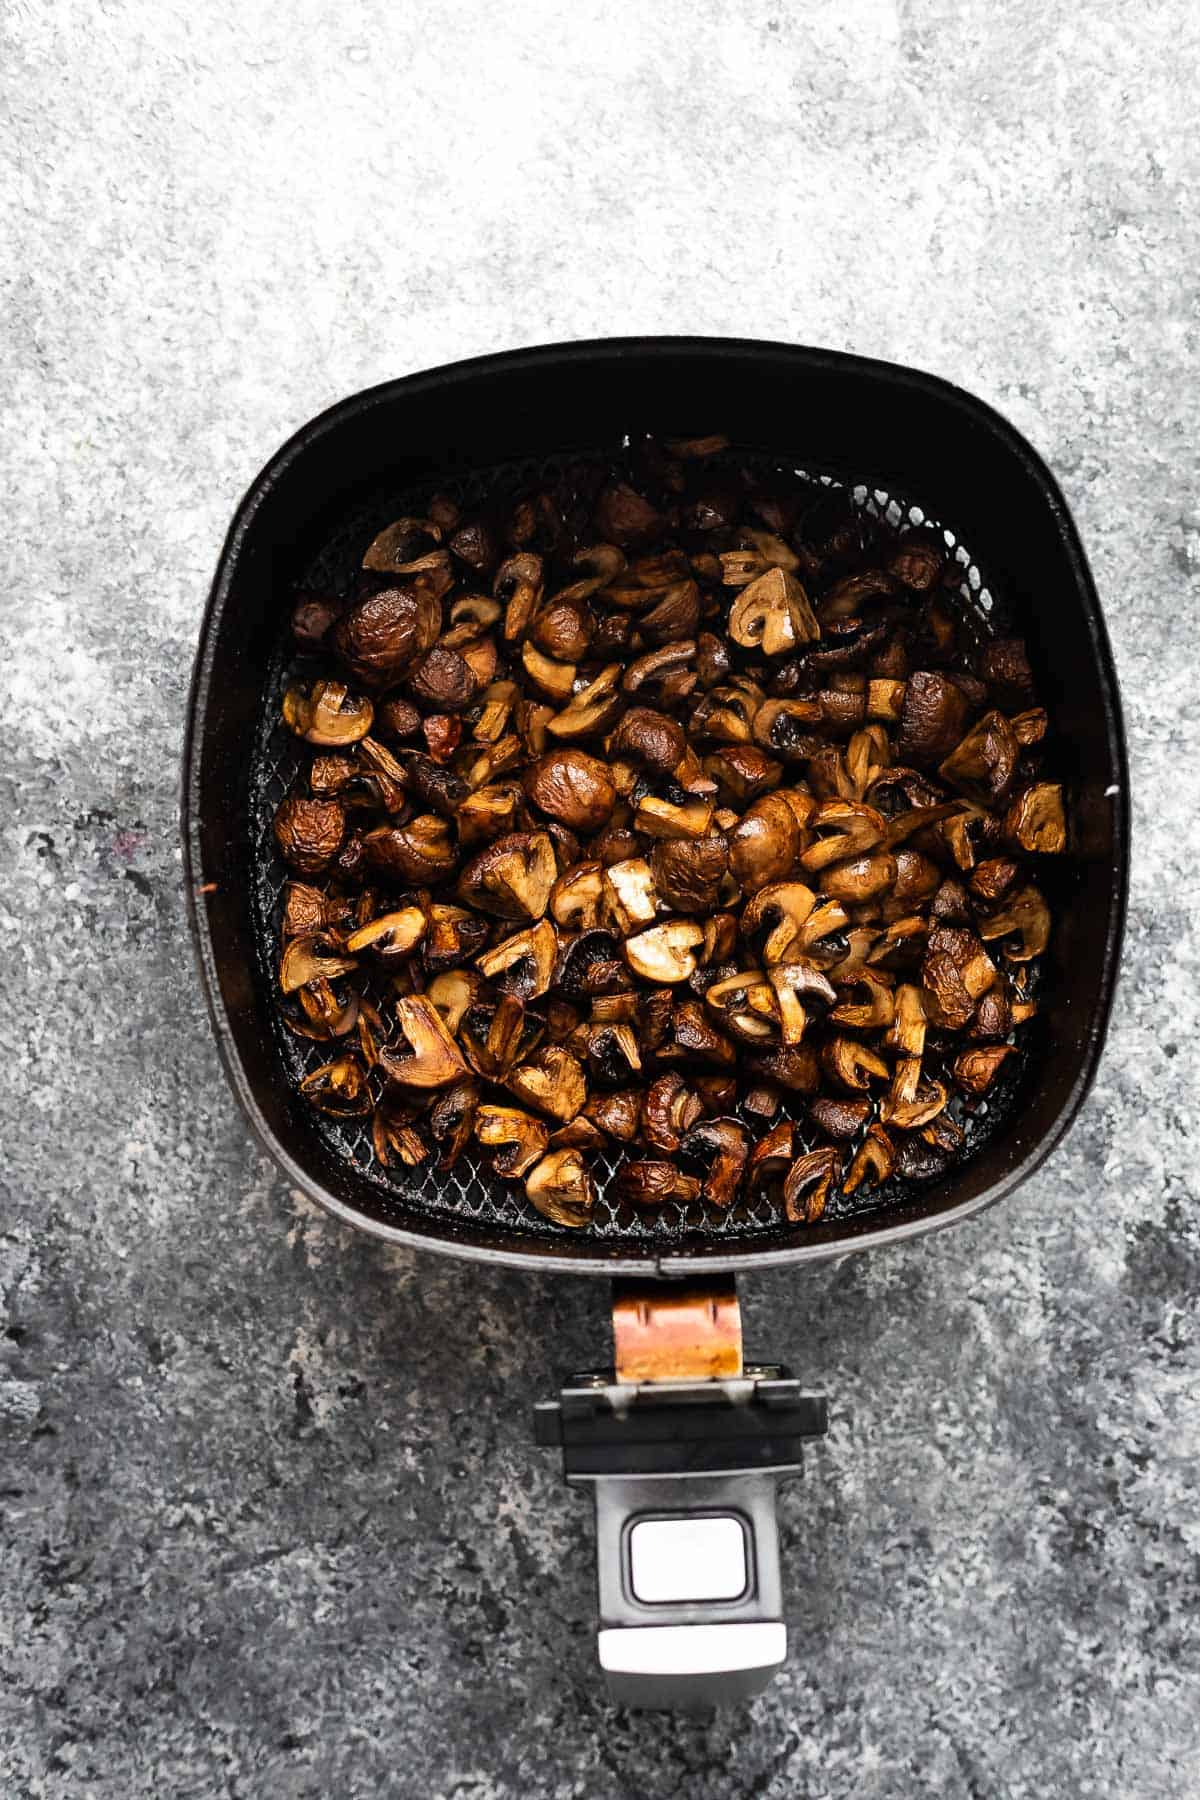 overhead view of cooked mushrooms in air fryer basket